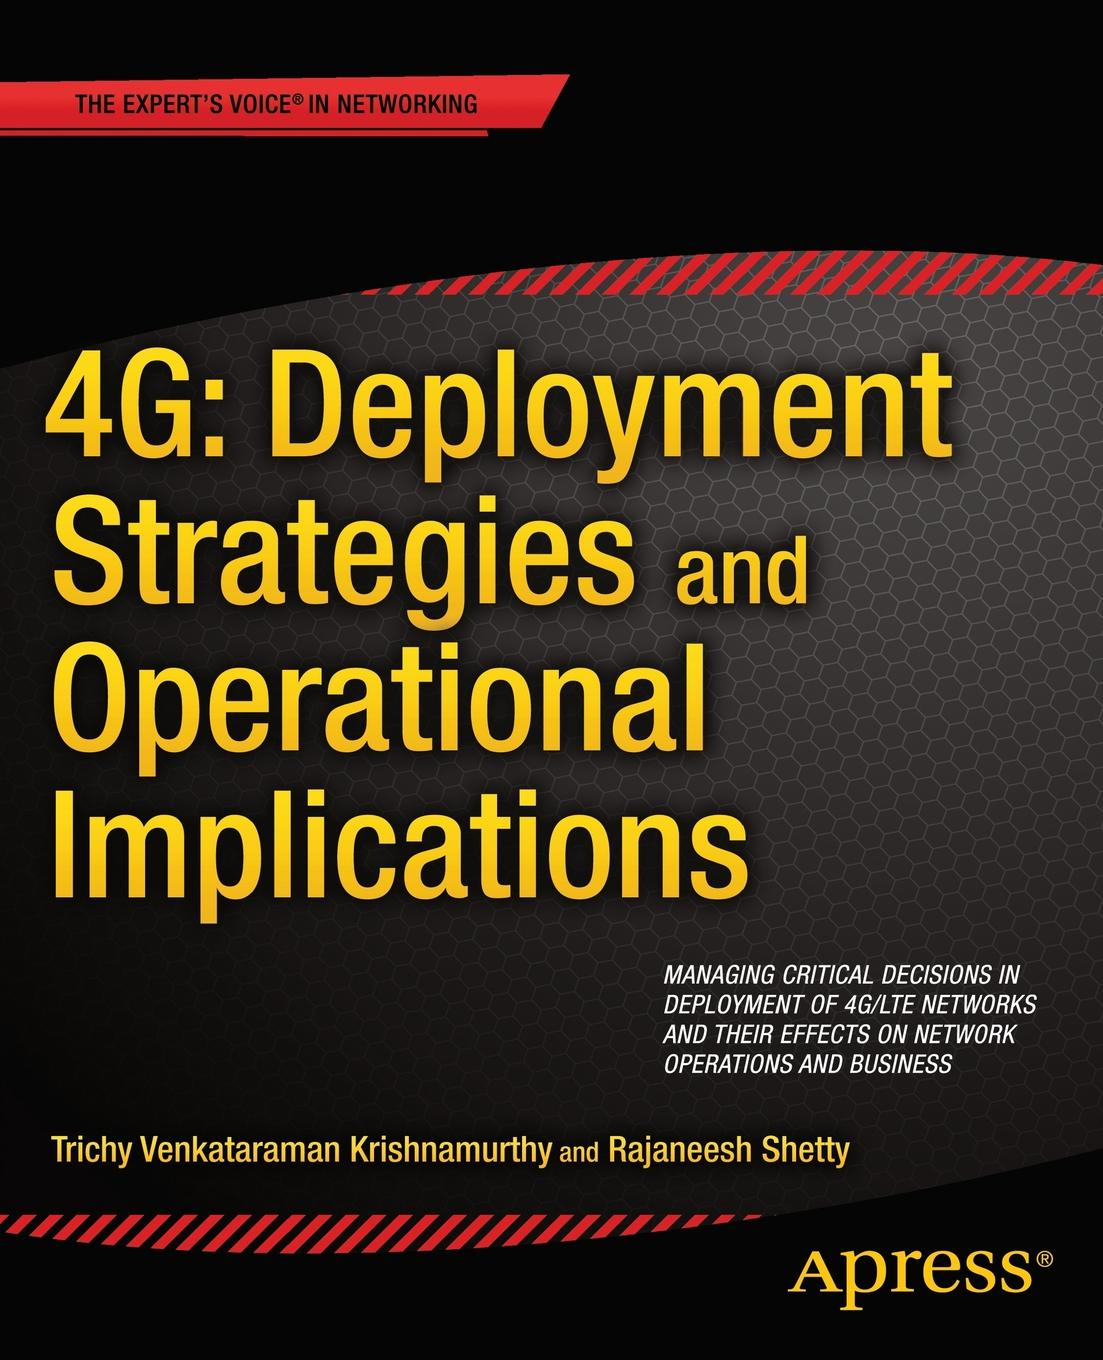 Trichy Venkataraman Krishnamurthy, Rajaneesh Shetty 4G. Deployment Strategies and Operational Implications : Managing Critical Decisions in Deployment of 4G/LTE Networks and their Effects on Network Operations and Business transmission control protocol over 4g lte advanced networks